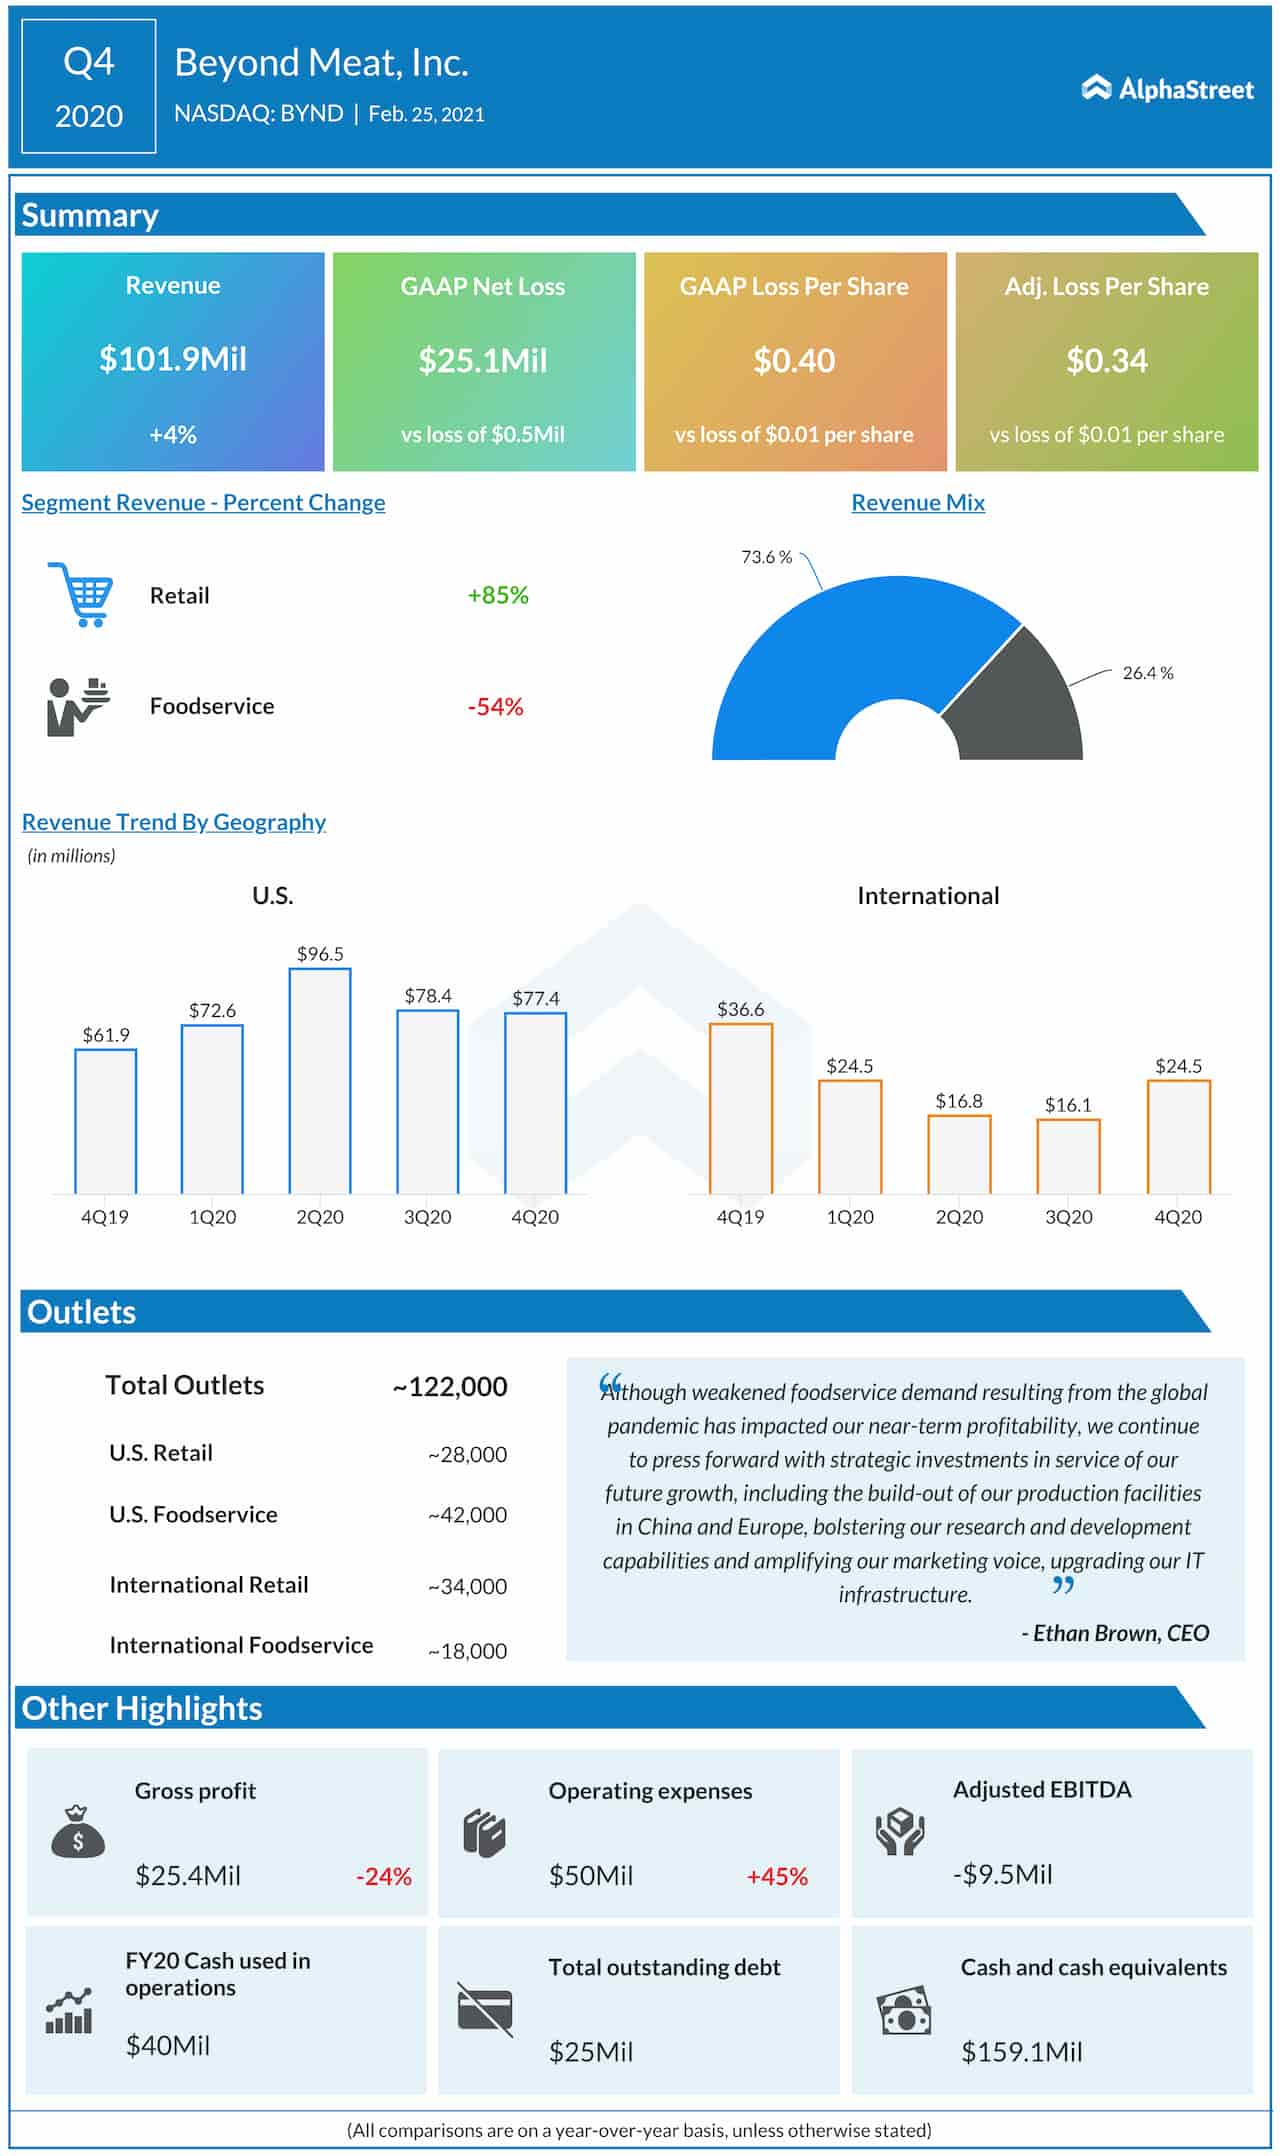 Beyond Meat Q4 2020 earnings infographic